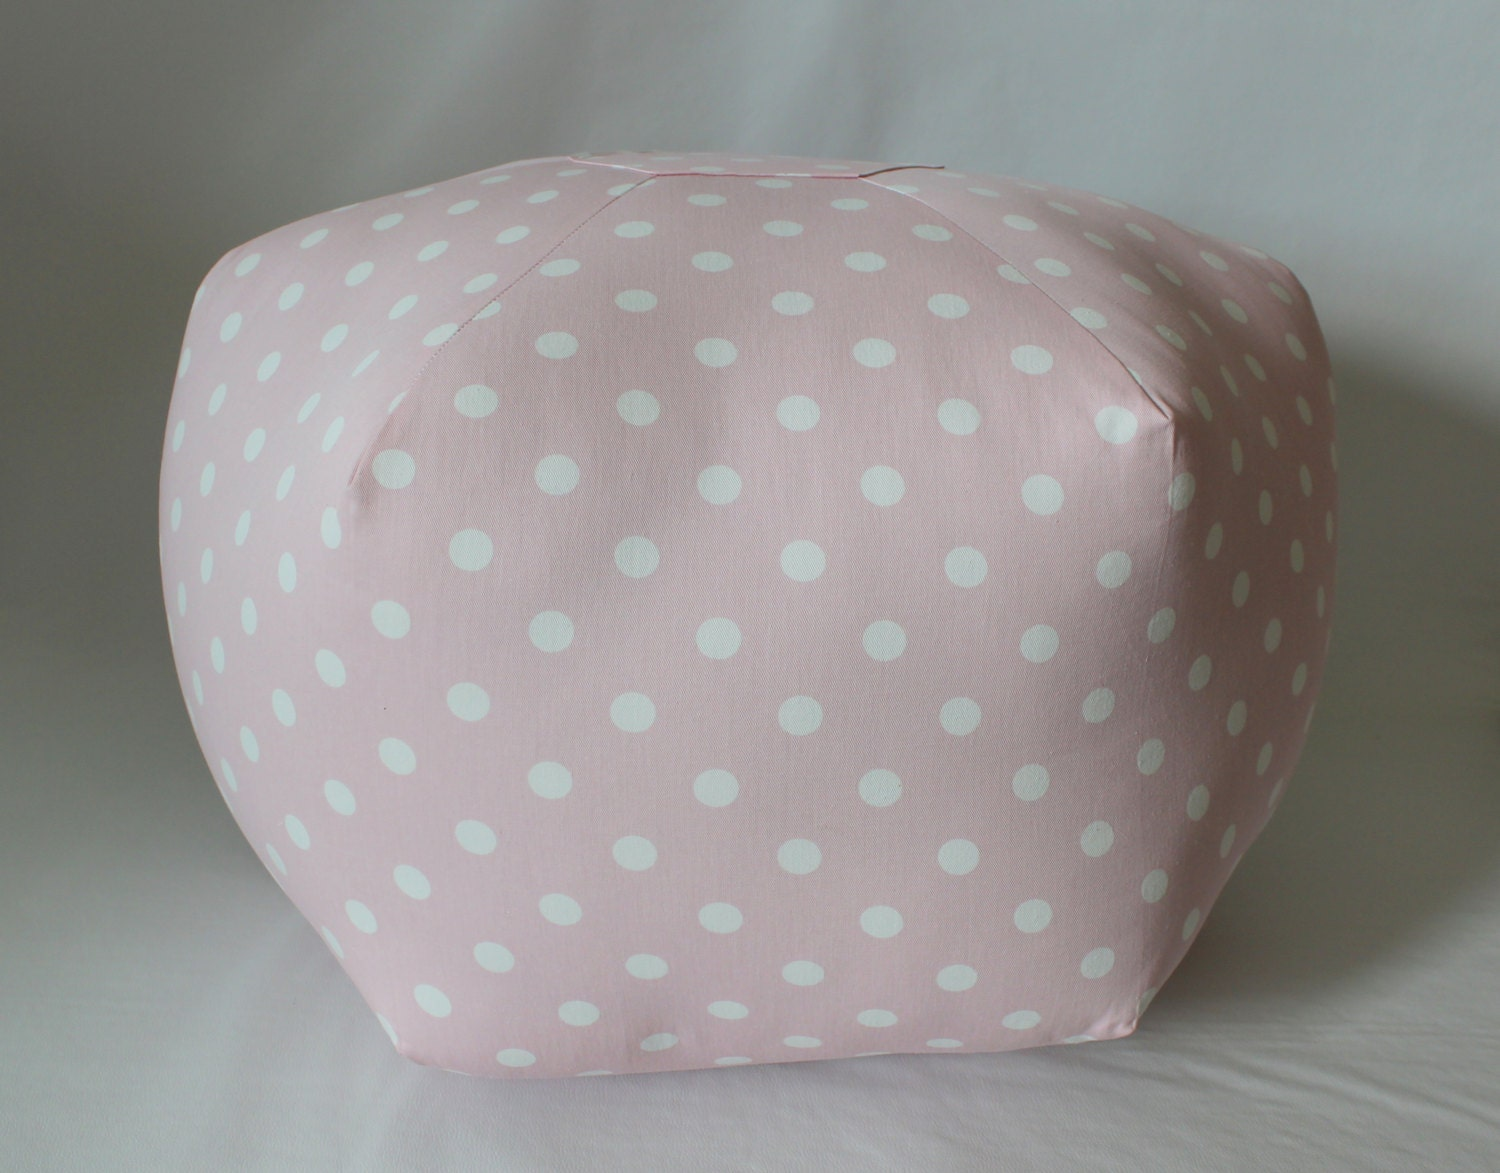 Light Pink Floor Pillows : Unavailable Listing on Etsy